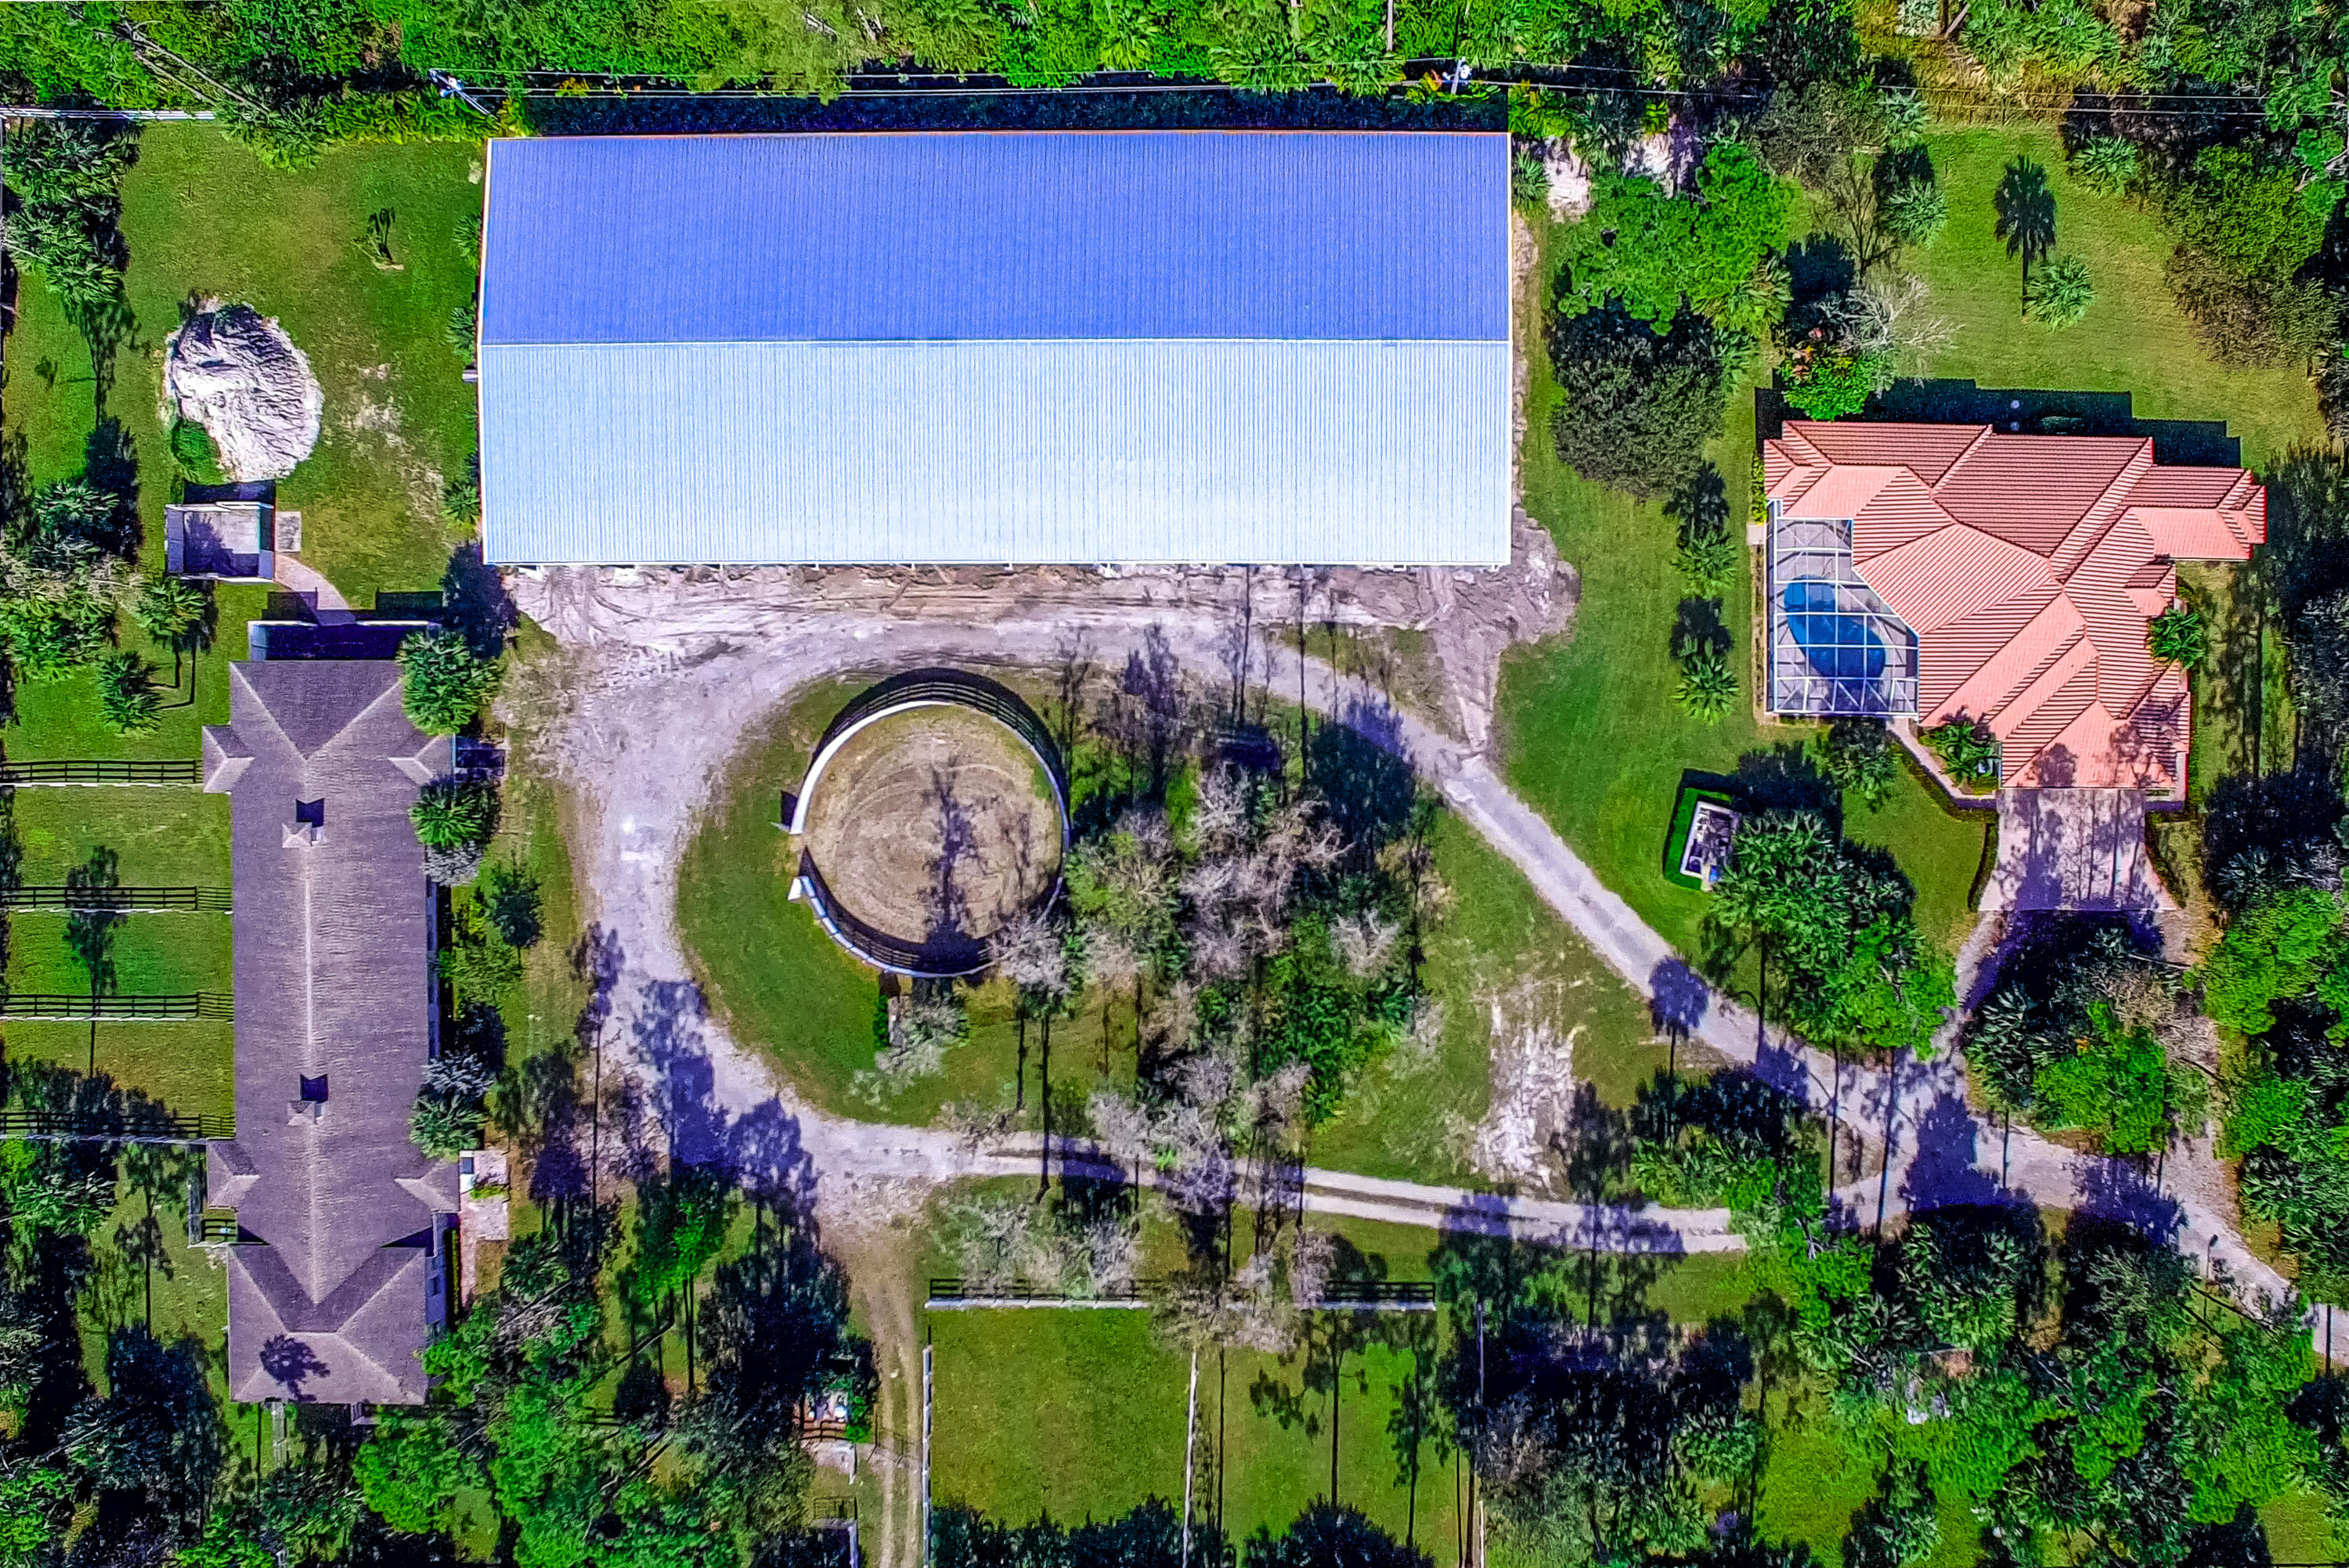 AERIAL WITH COVERED ARENA